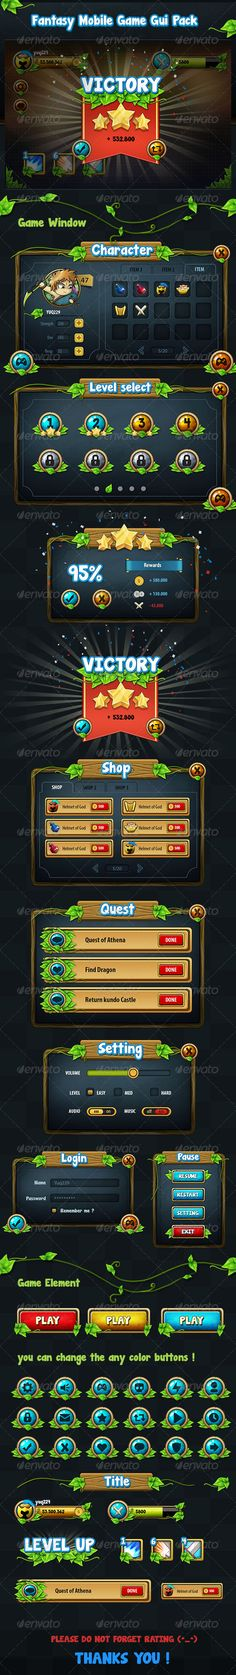 Fantasy Mobile Game Gui Pack 04 - User Interfaces Web Elements